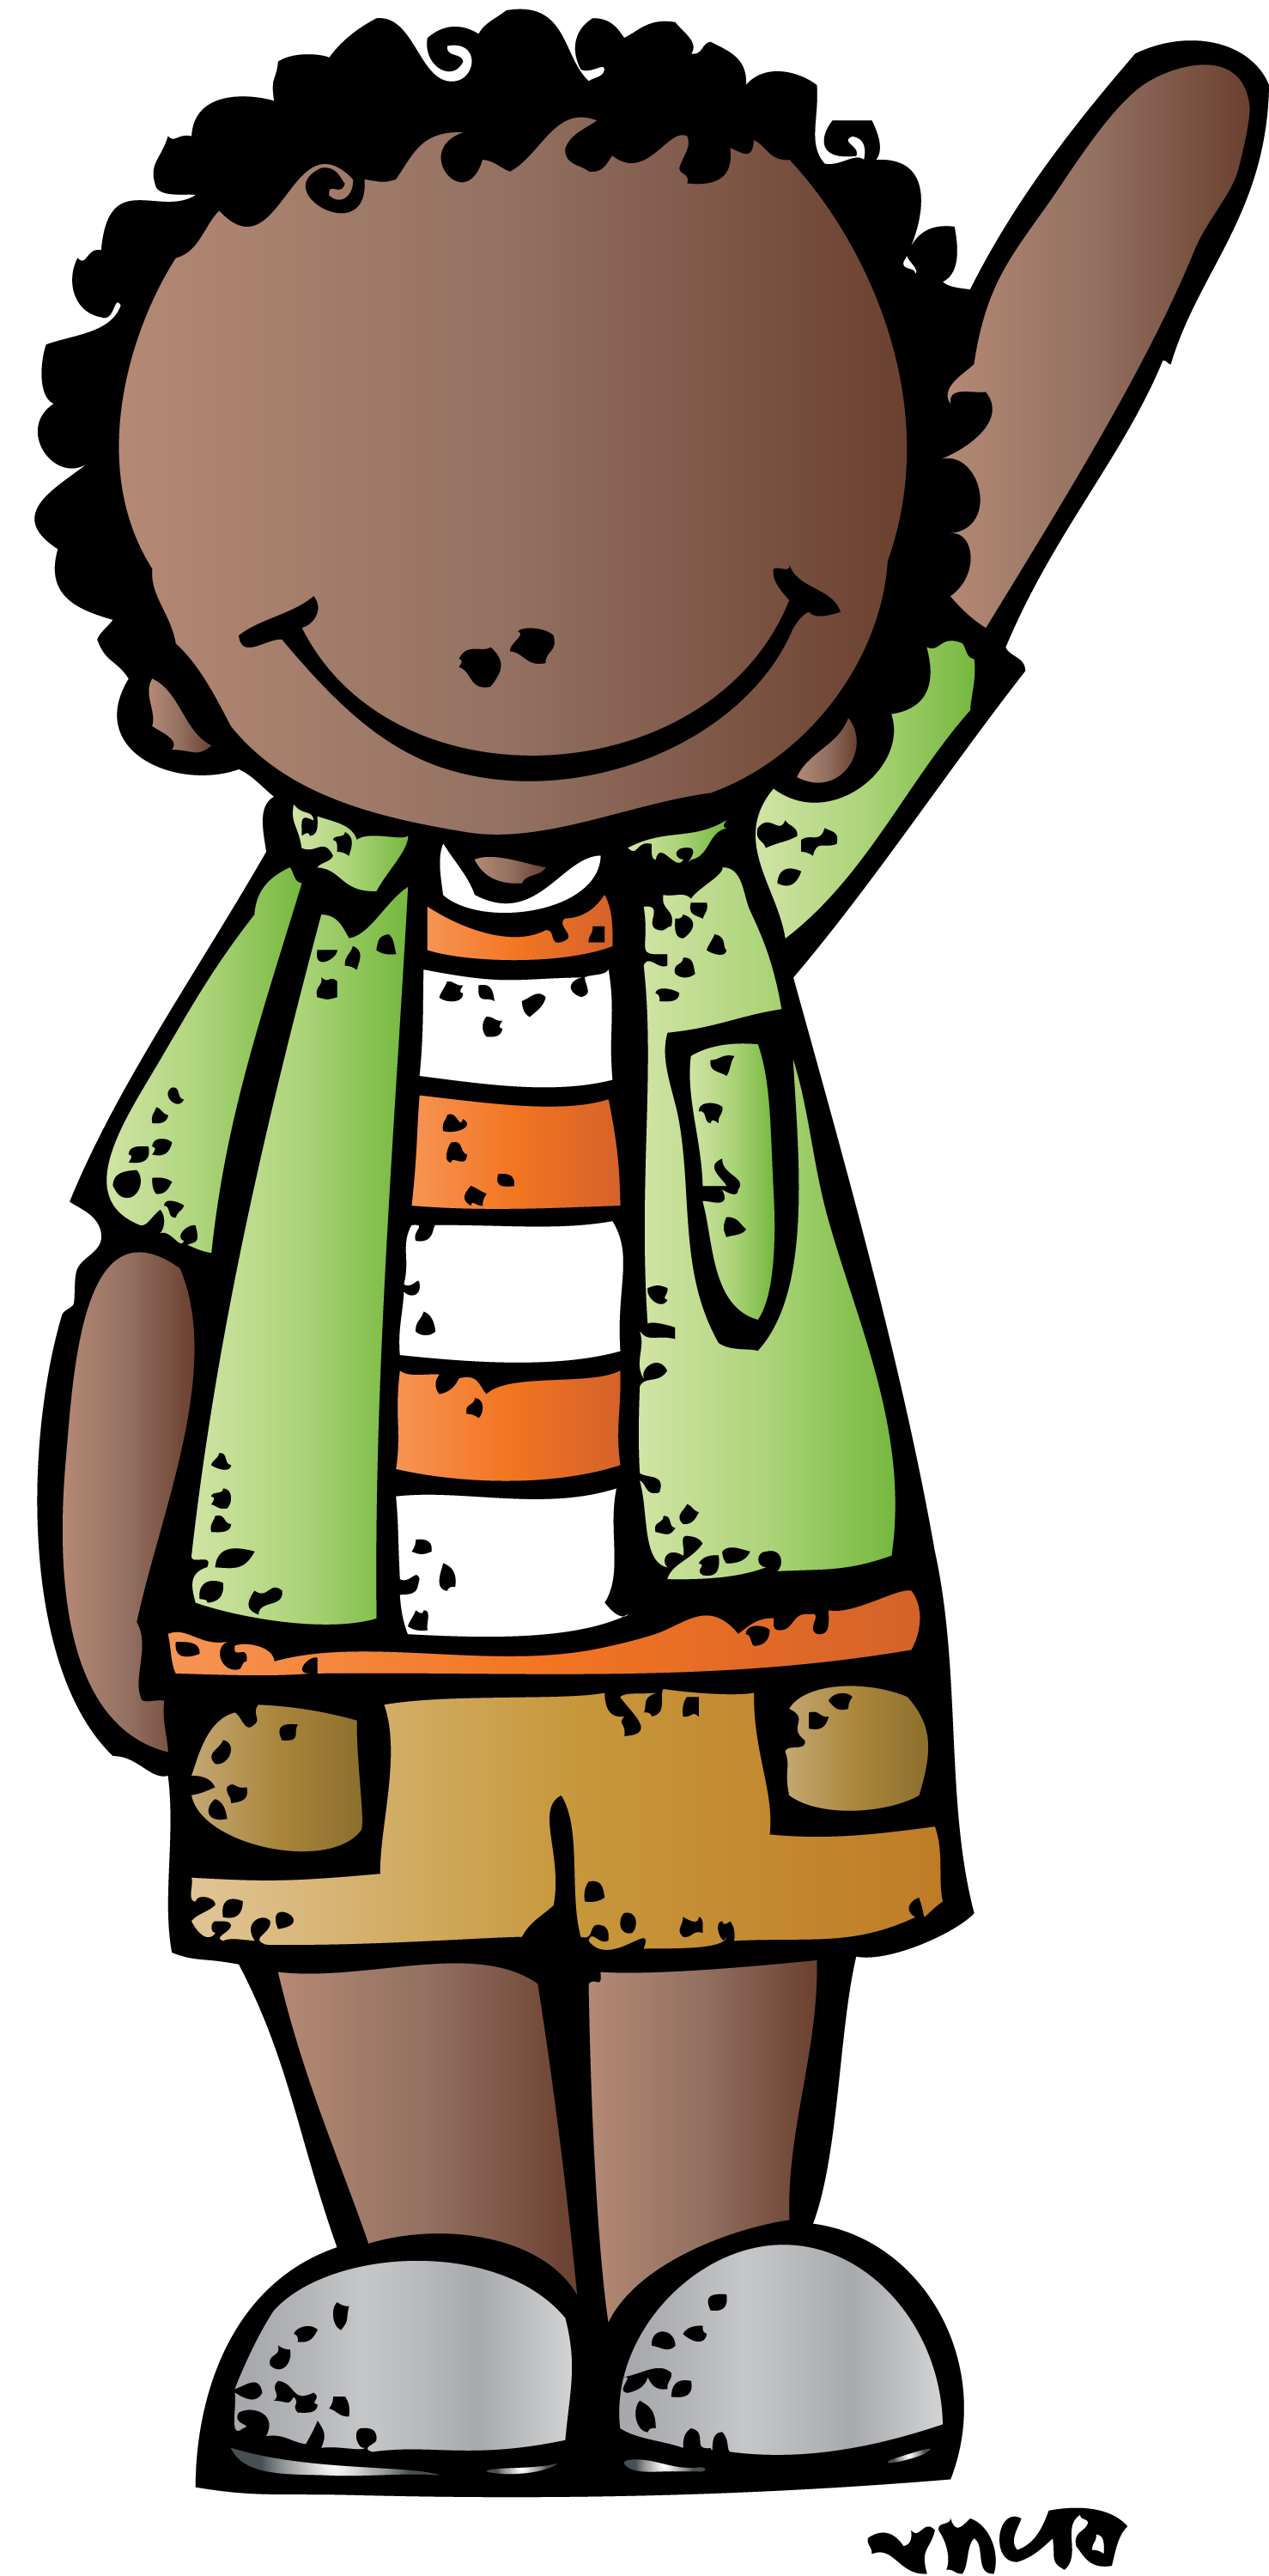 image library download Phone Clipart melonheadz